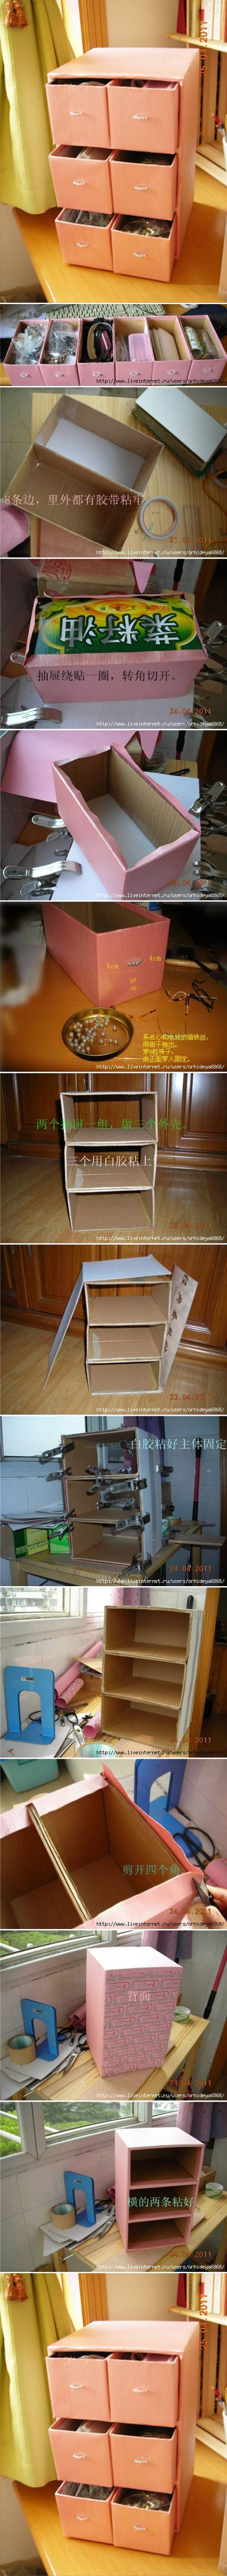 Cardboard furniture techniques how to achieve strength growing up - Diy Small Cardboard Chest Diy Projects Usefuldiy Com On Imgfave